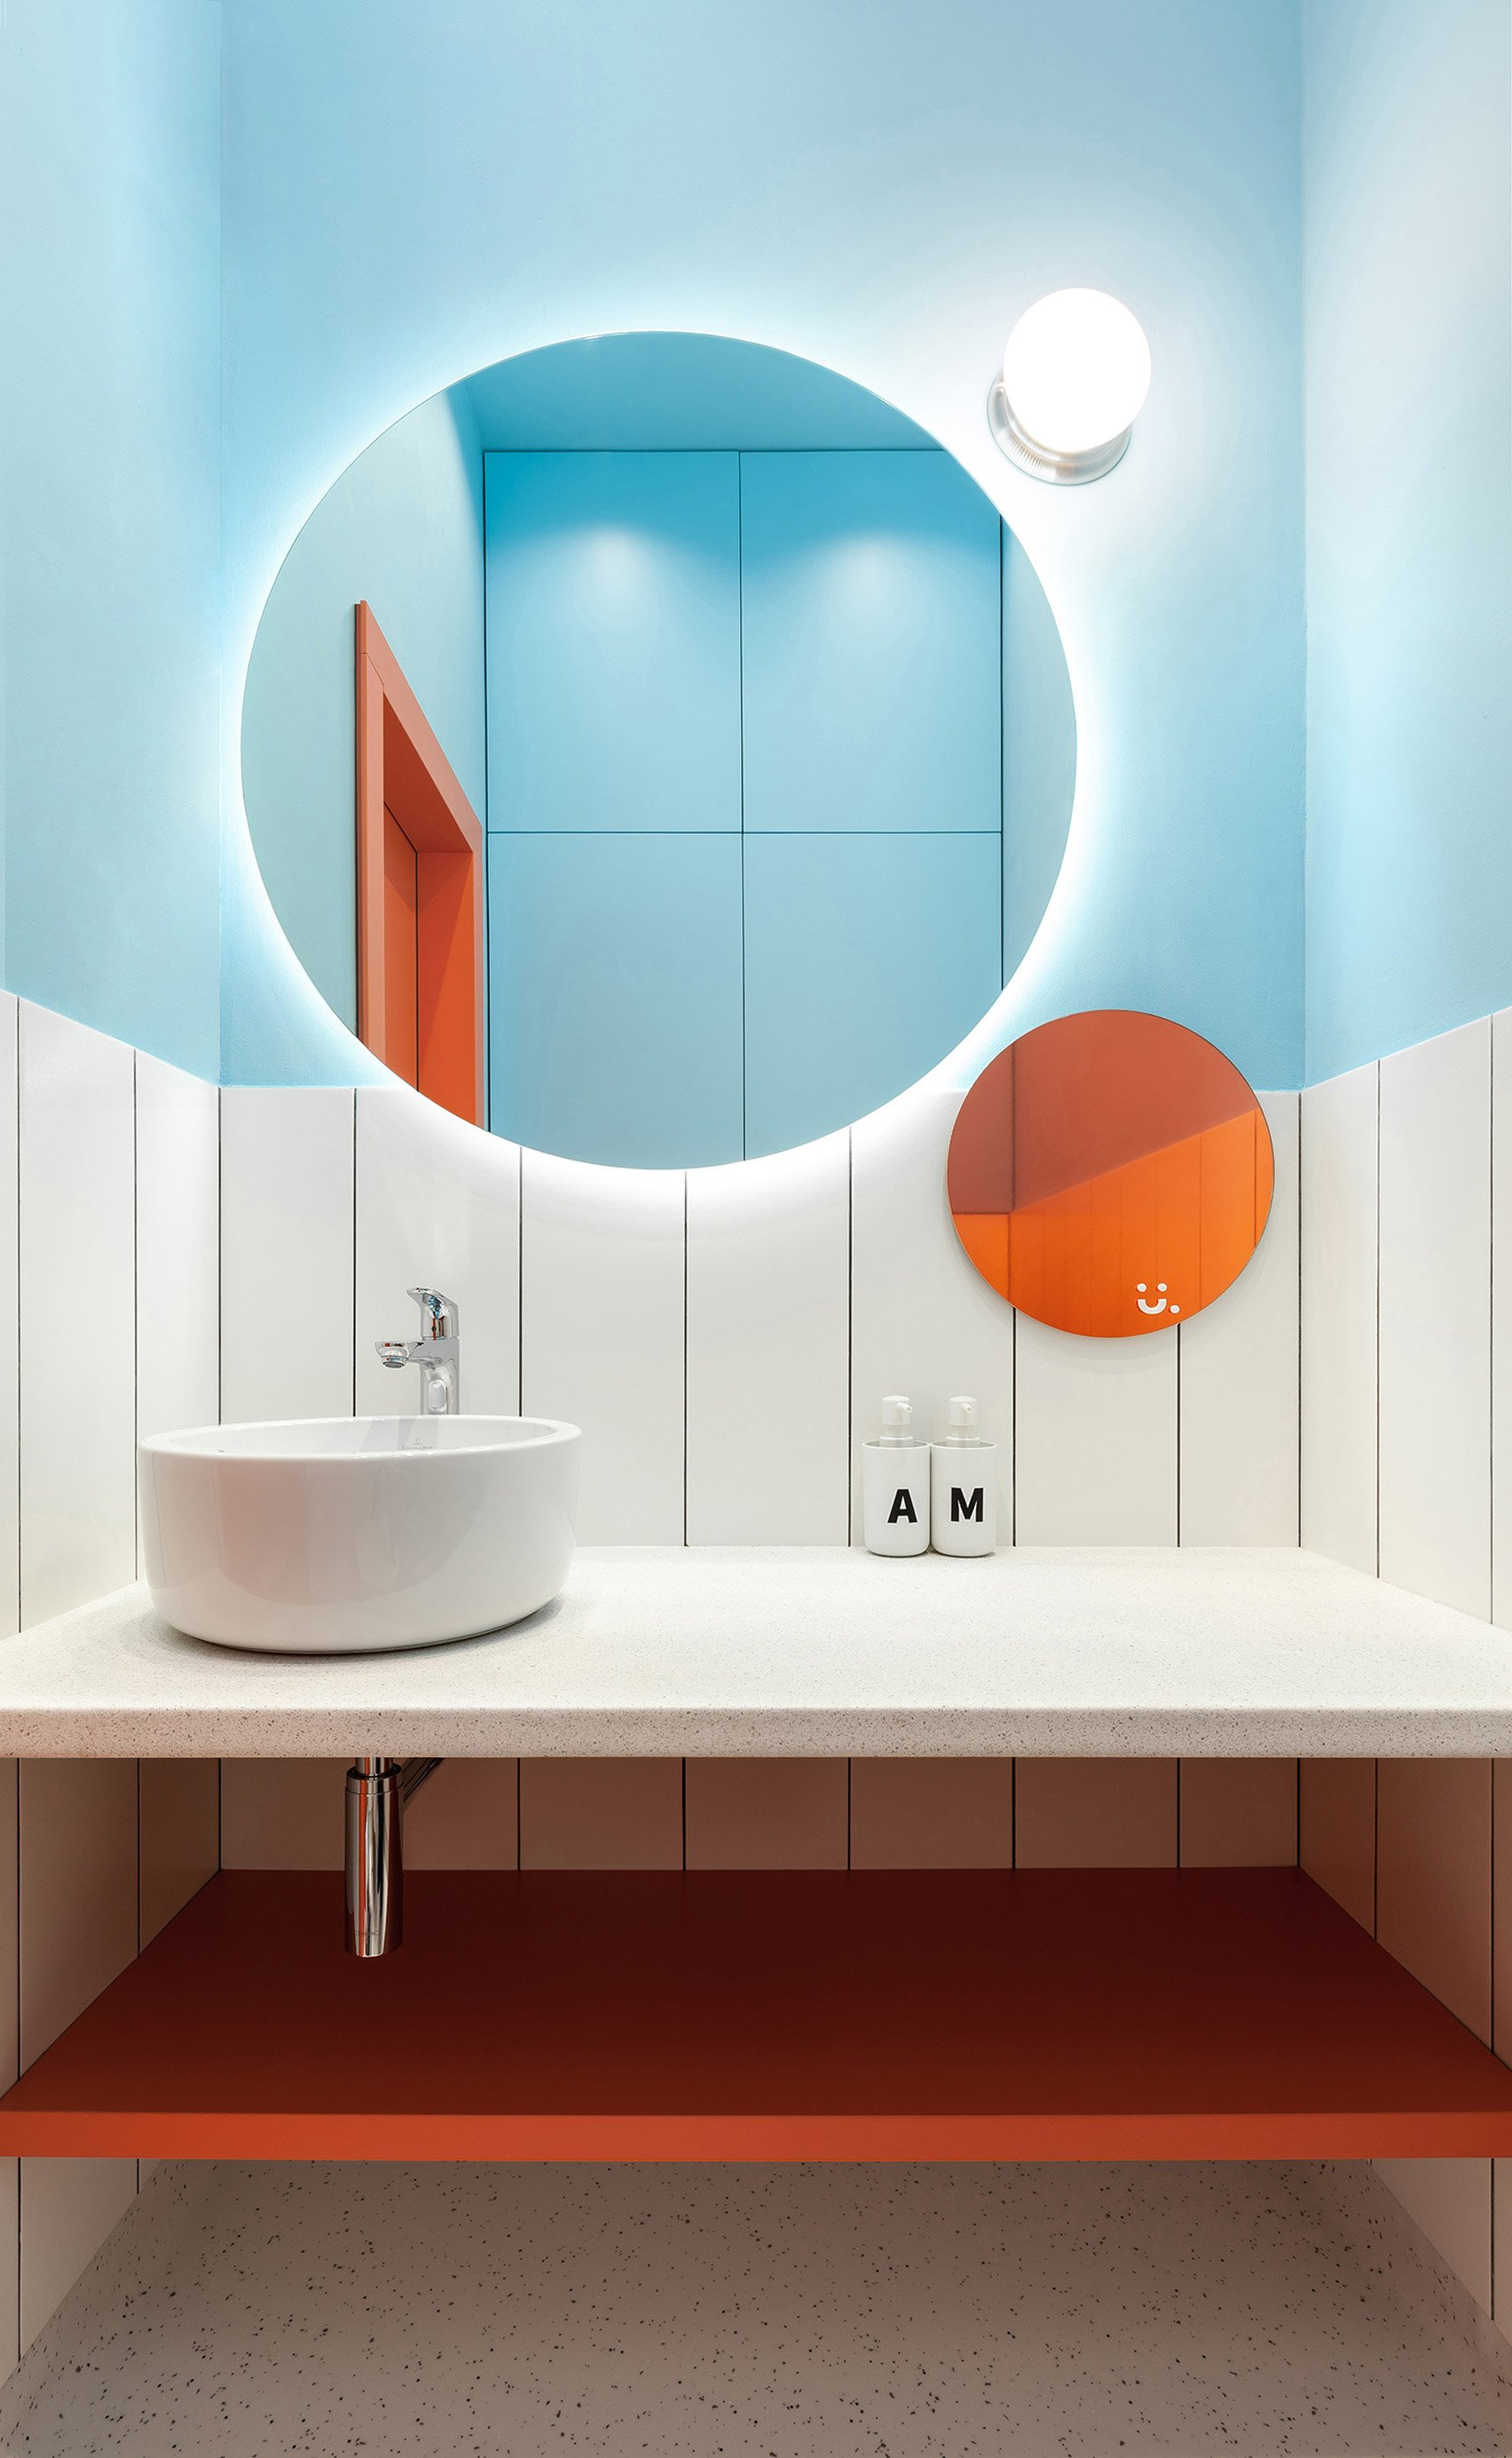 Interiors of Doctor U clinic designed by Ater Architects